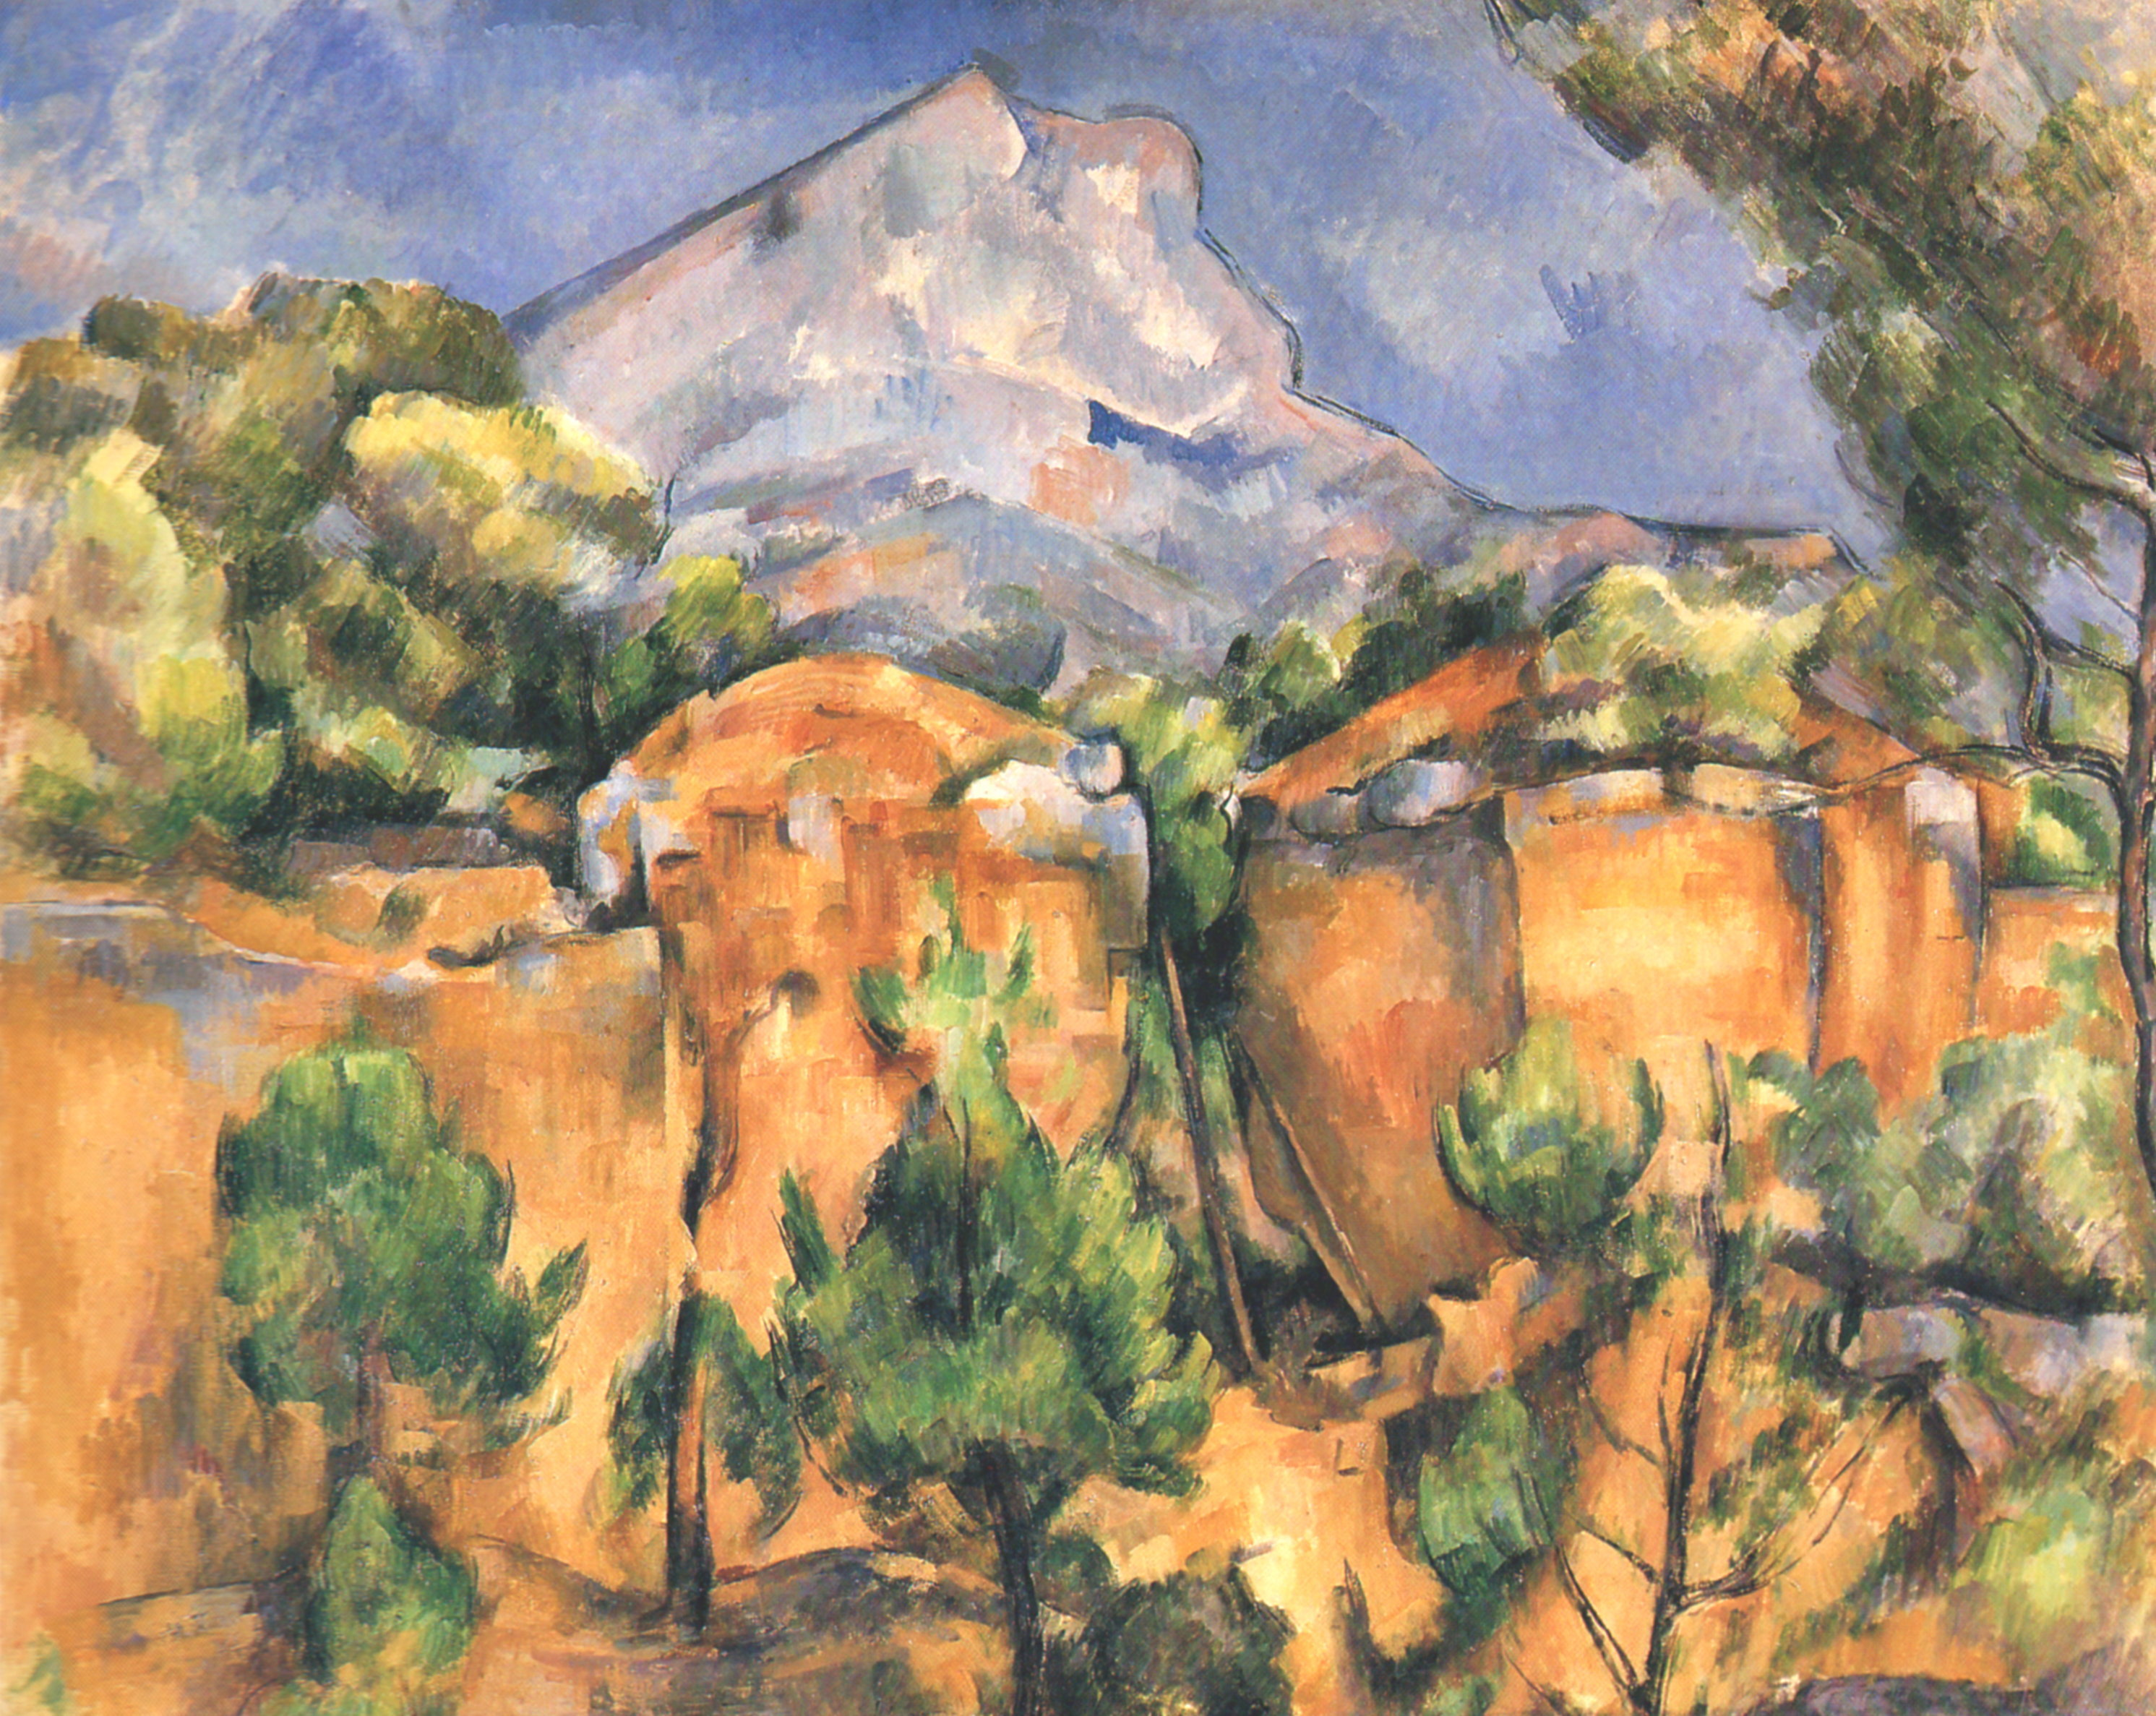 Figura 3 - Cézanne. Pedreira e o monte de Santa Vitória. Baltimore, The Baltimore Museum of Art.